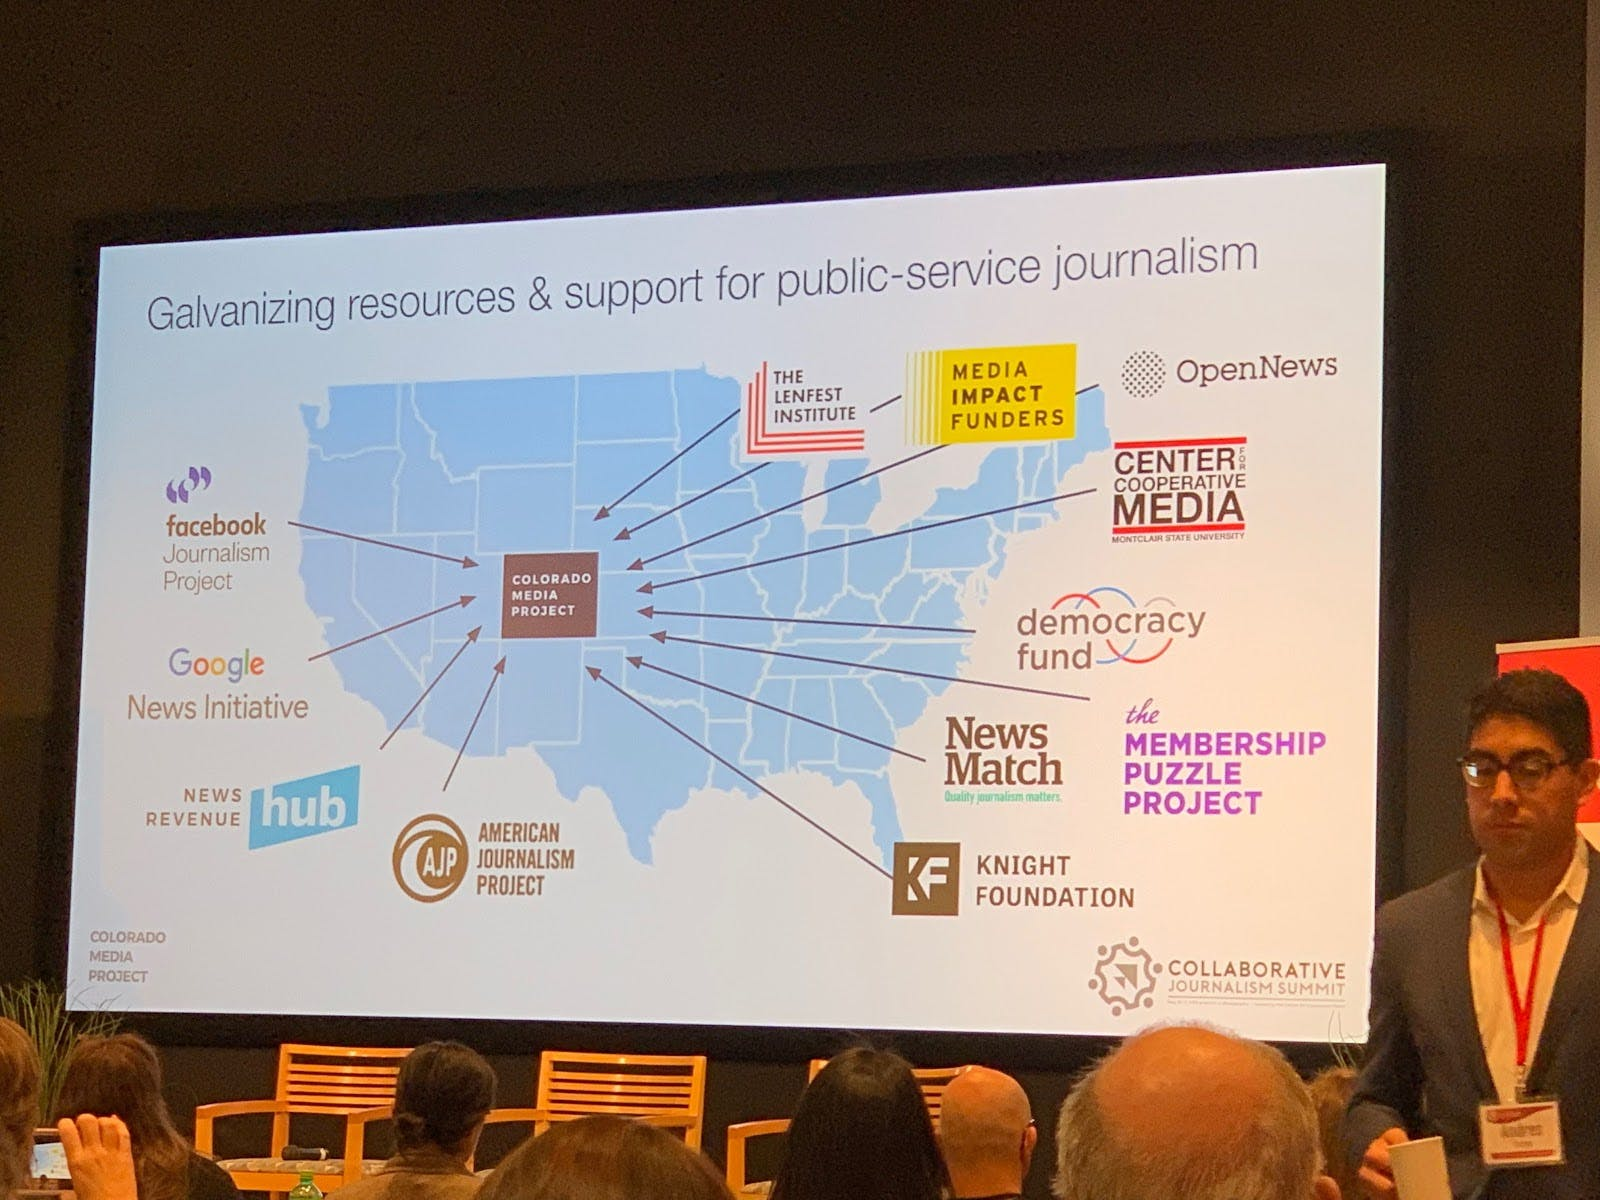 <p><em>From the Colorado Media Project presentation at the 2019 Collaborative Journalism Summit</em></p>